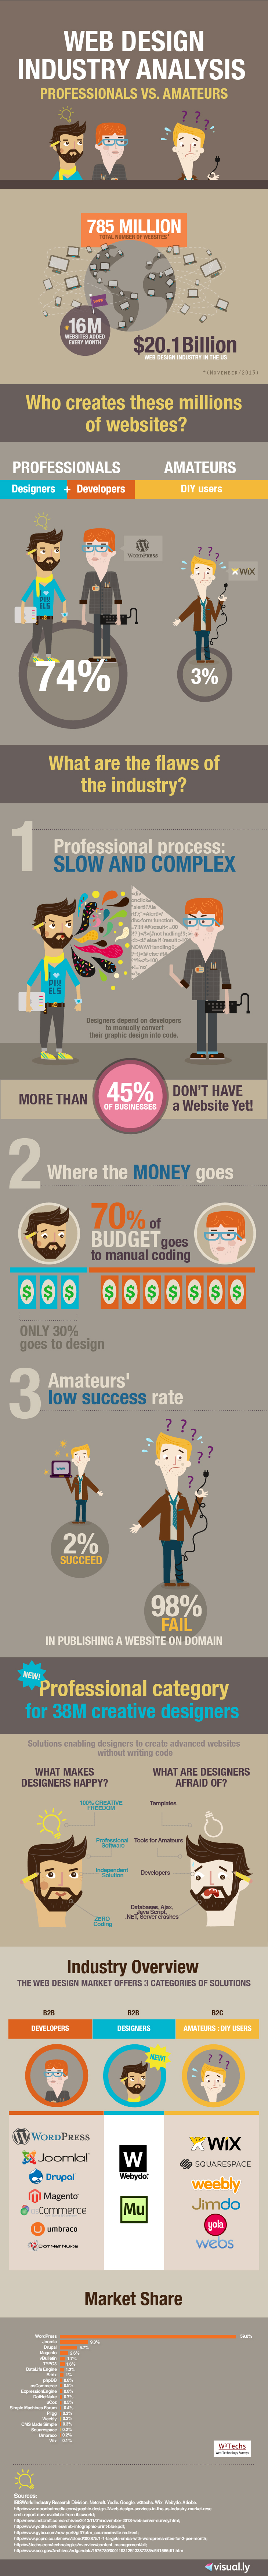 Web Design Industry Analysis - Professionals vs. Amateurs